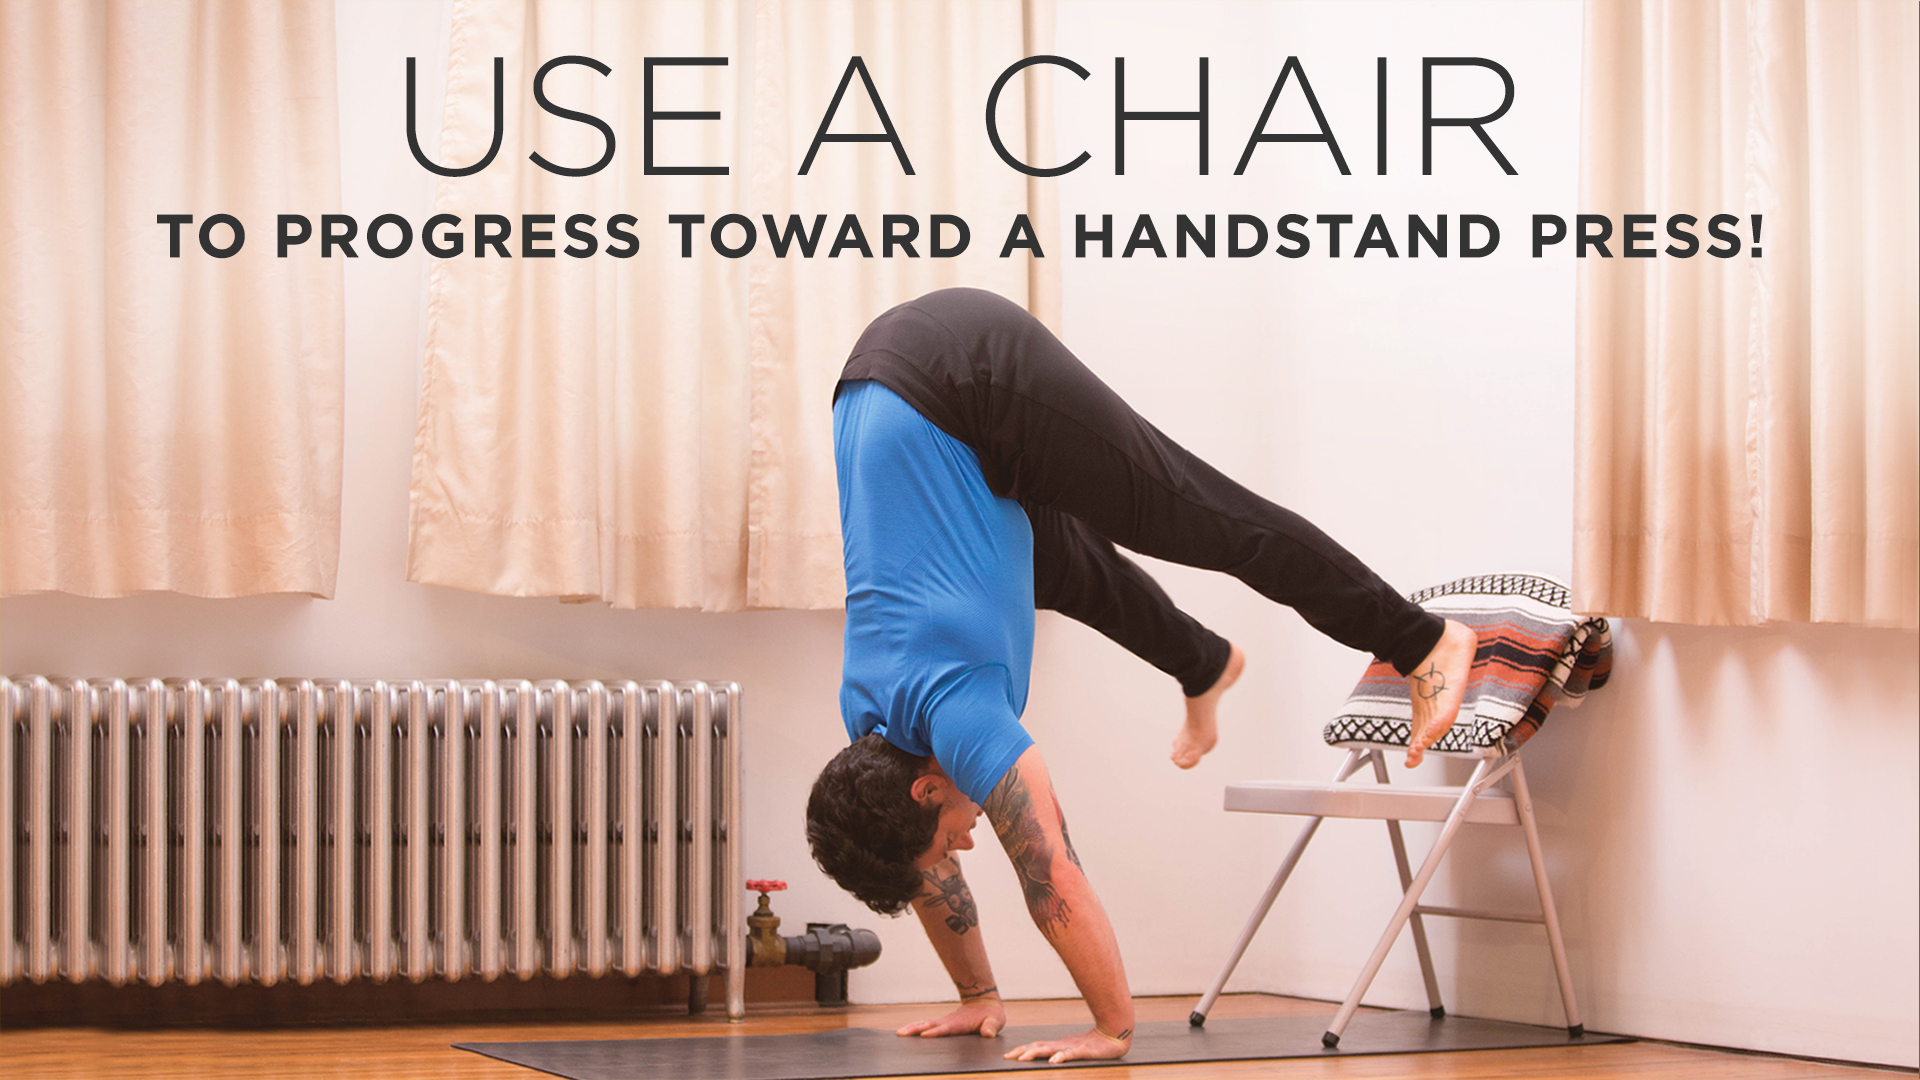 Use a Chair to Progress Toward a Handstand Press